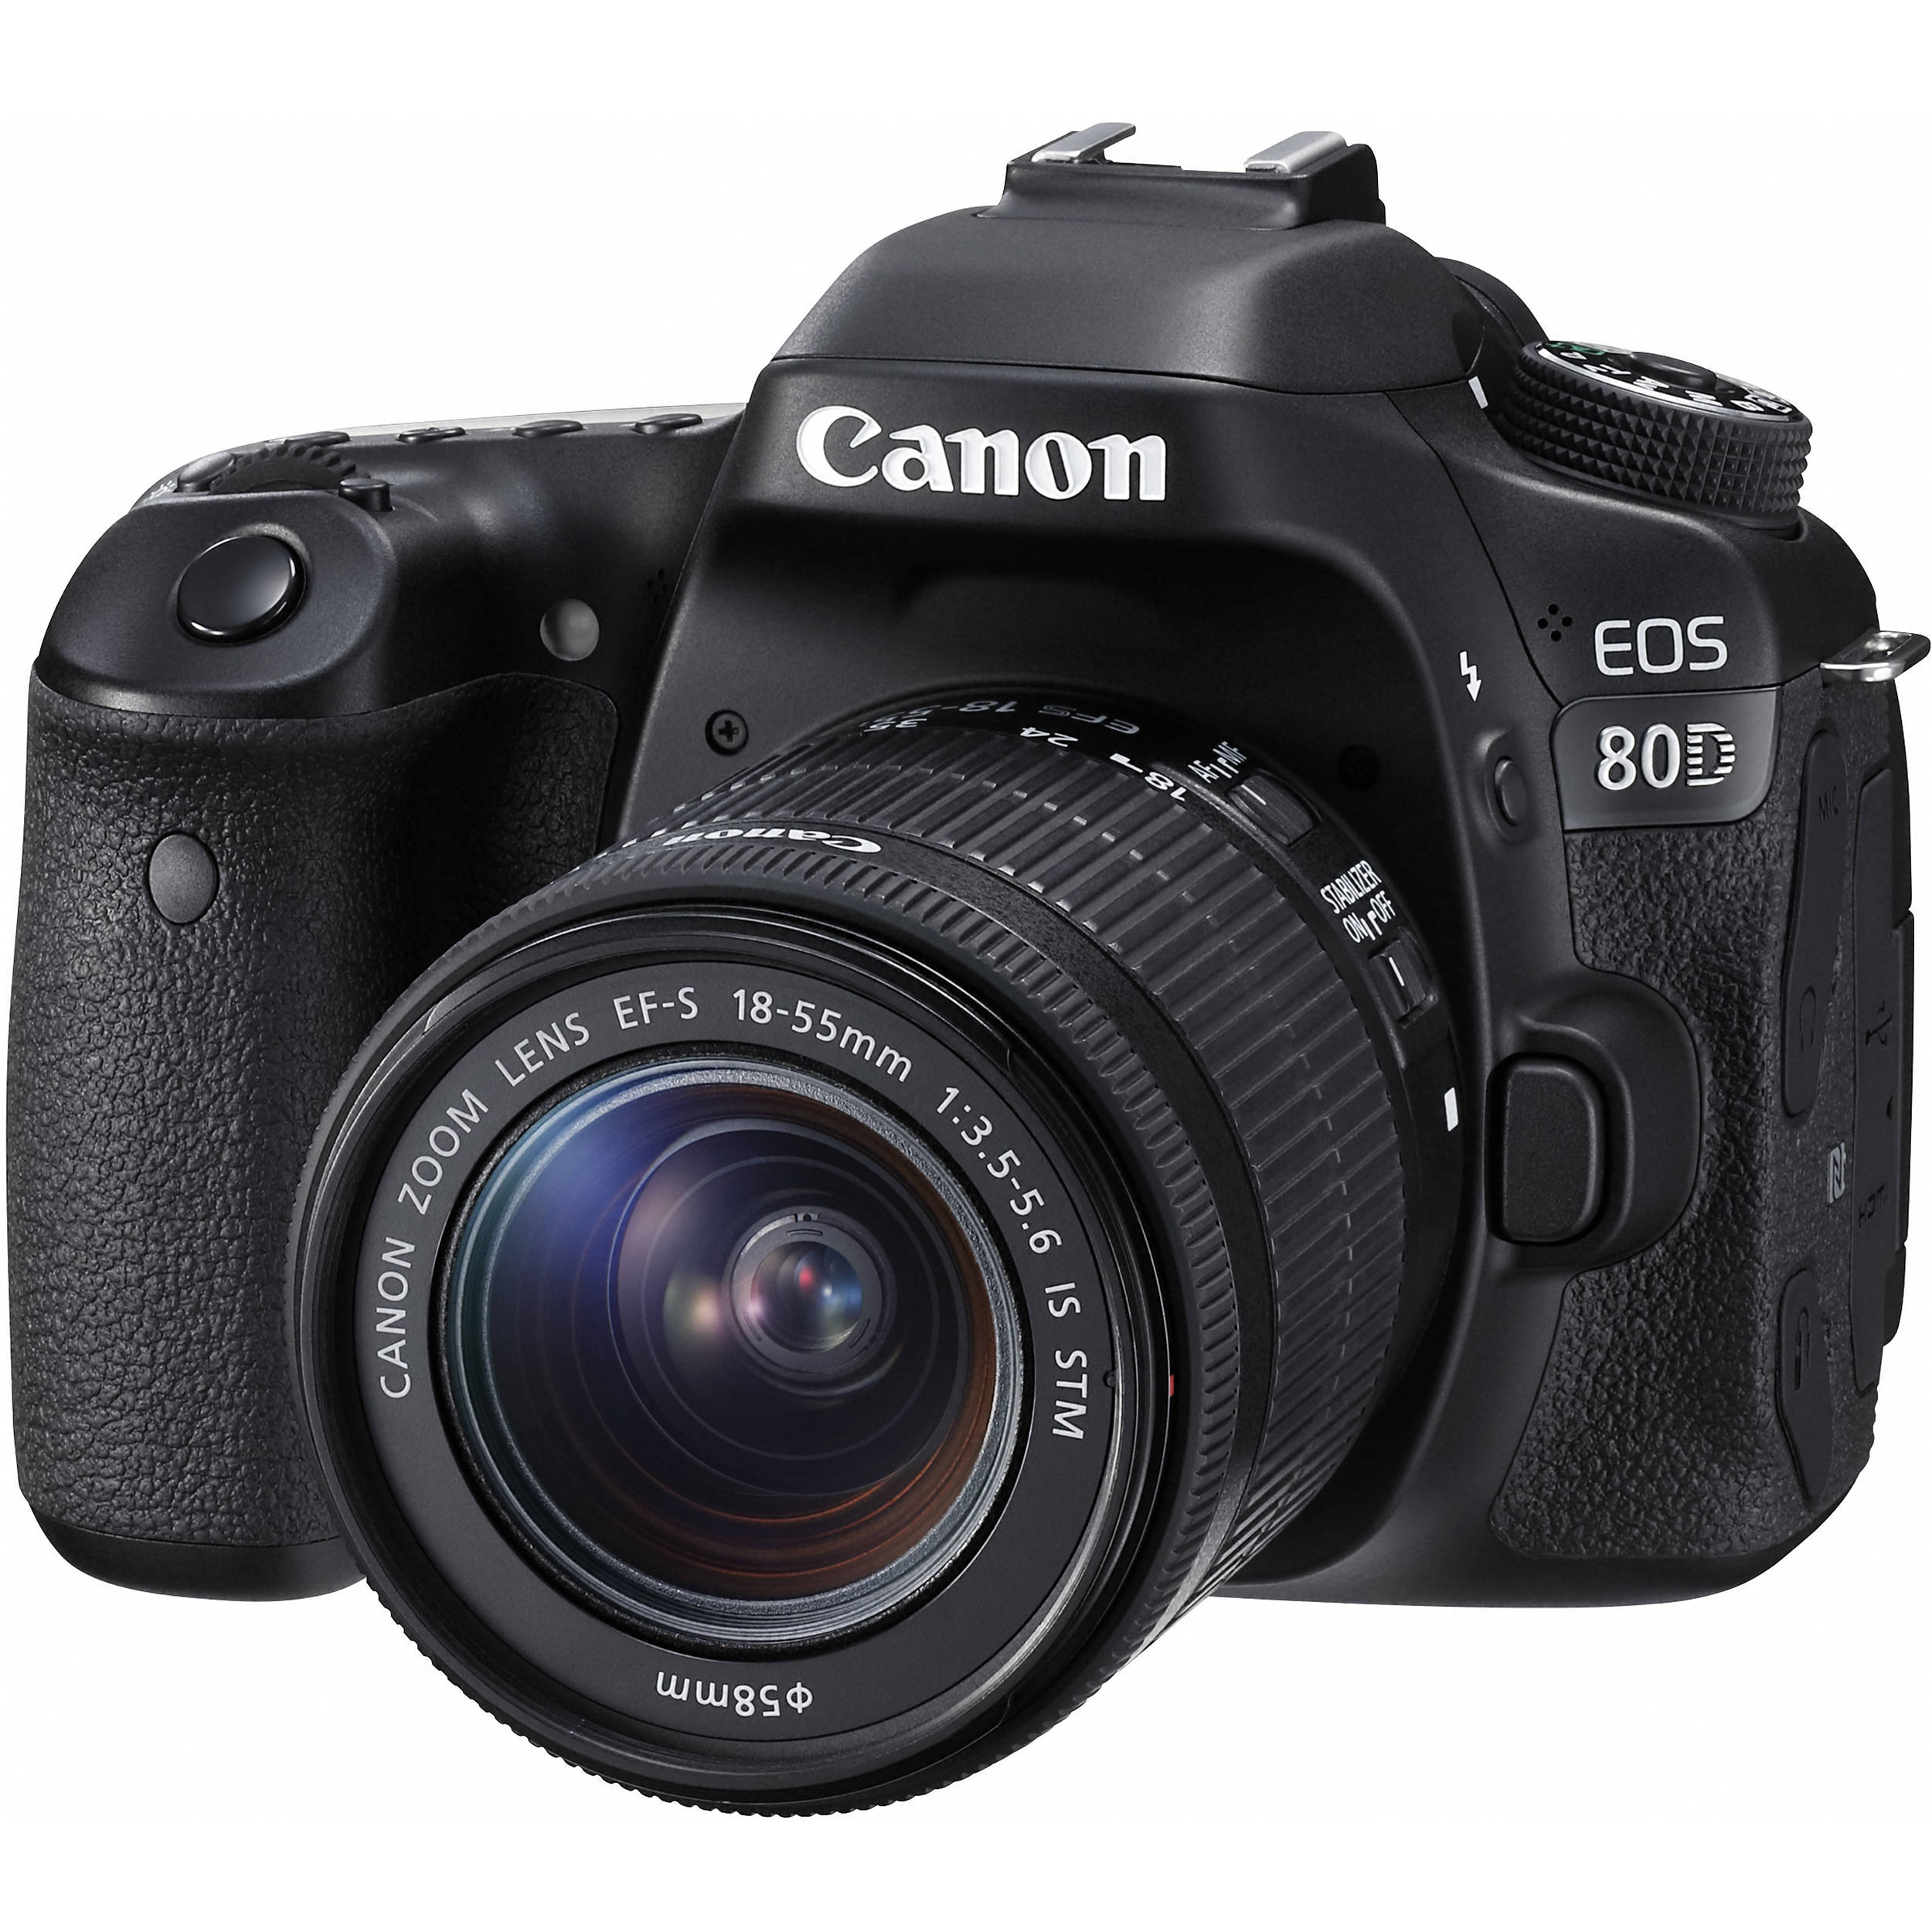 Canon EOS 80D DSLR Camera with 18 55mm Lens 1263C005 B&H